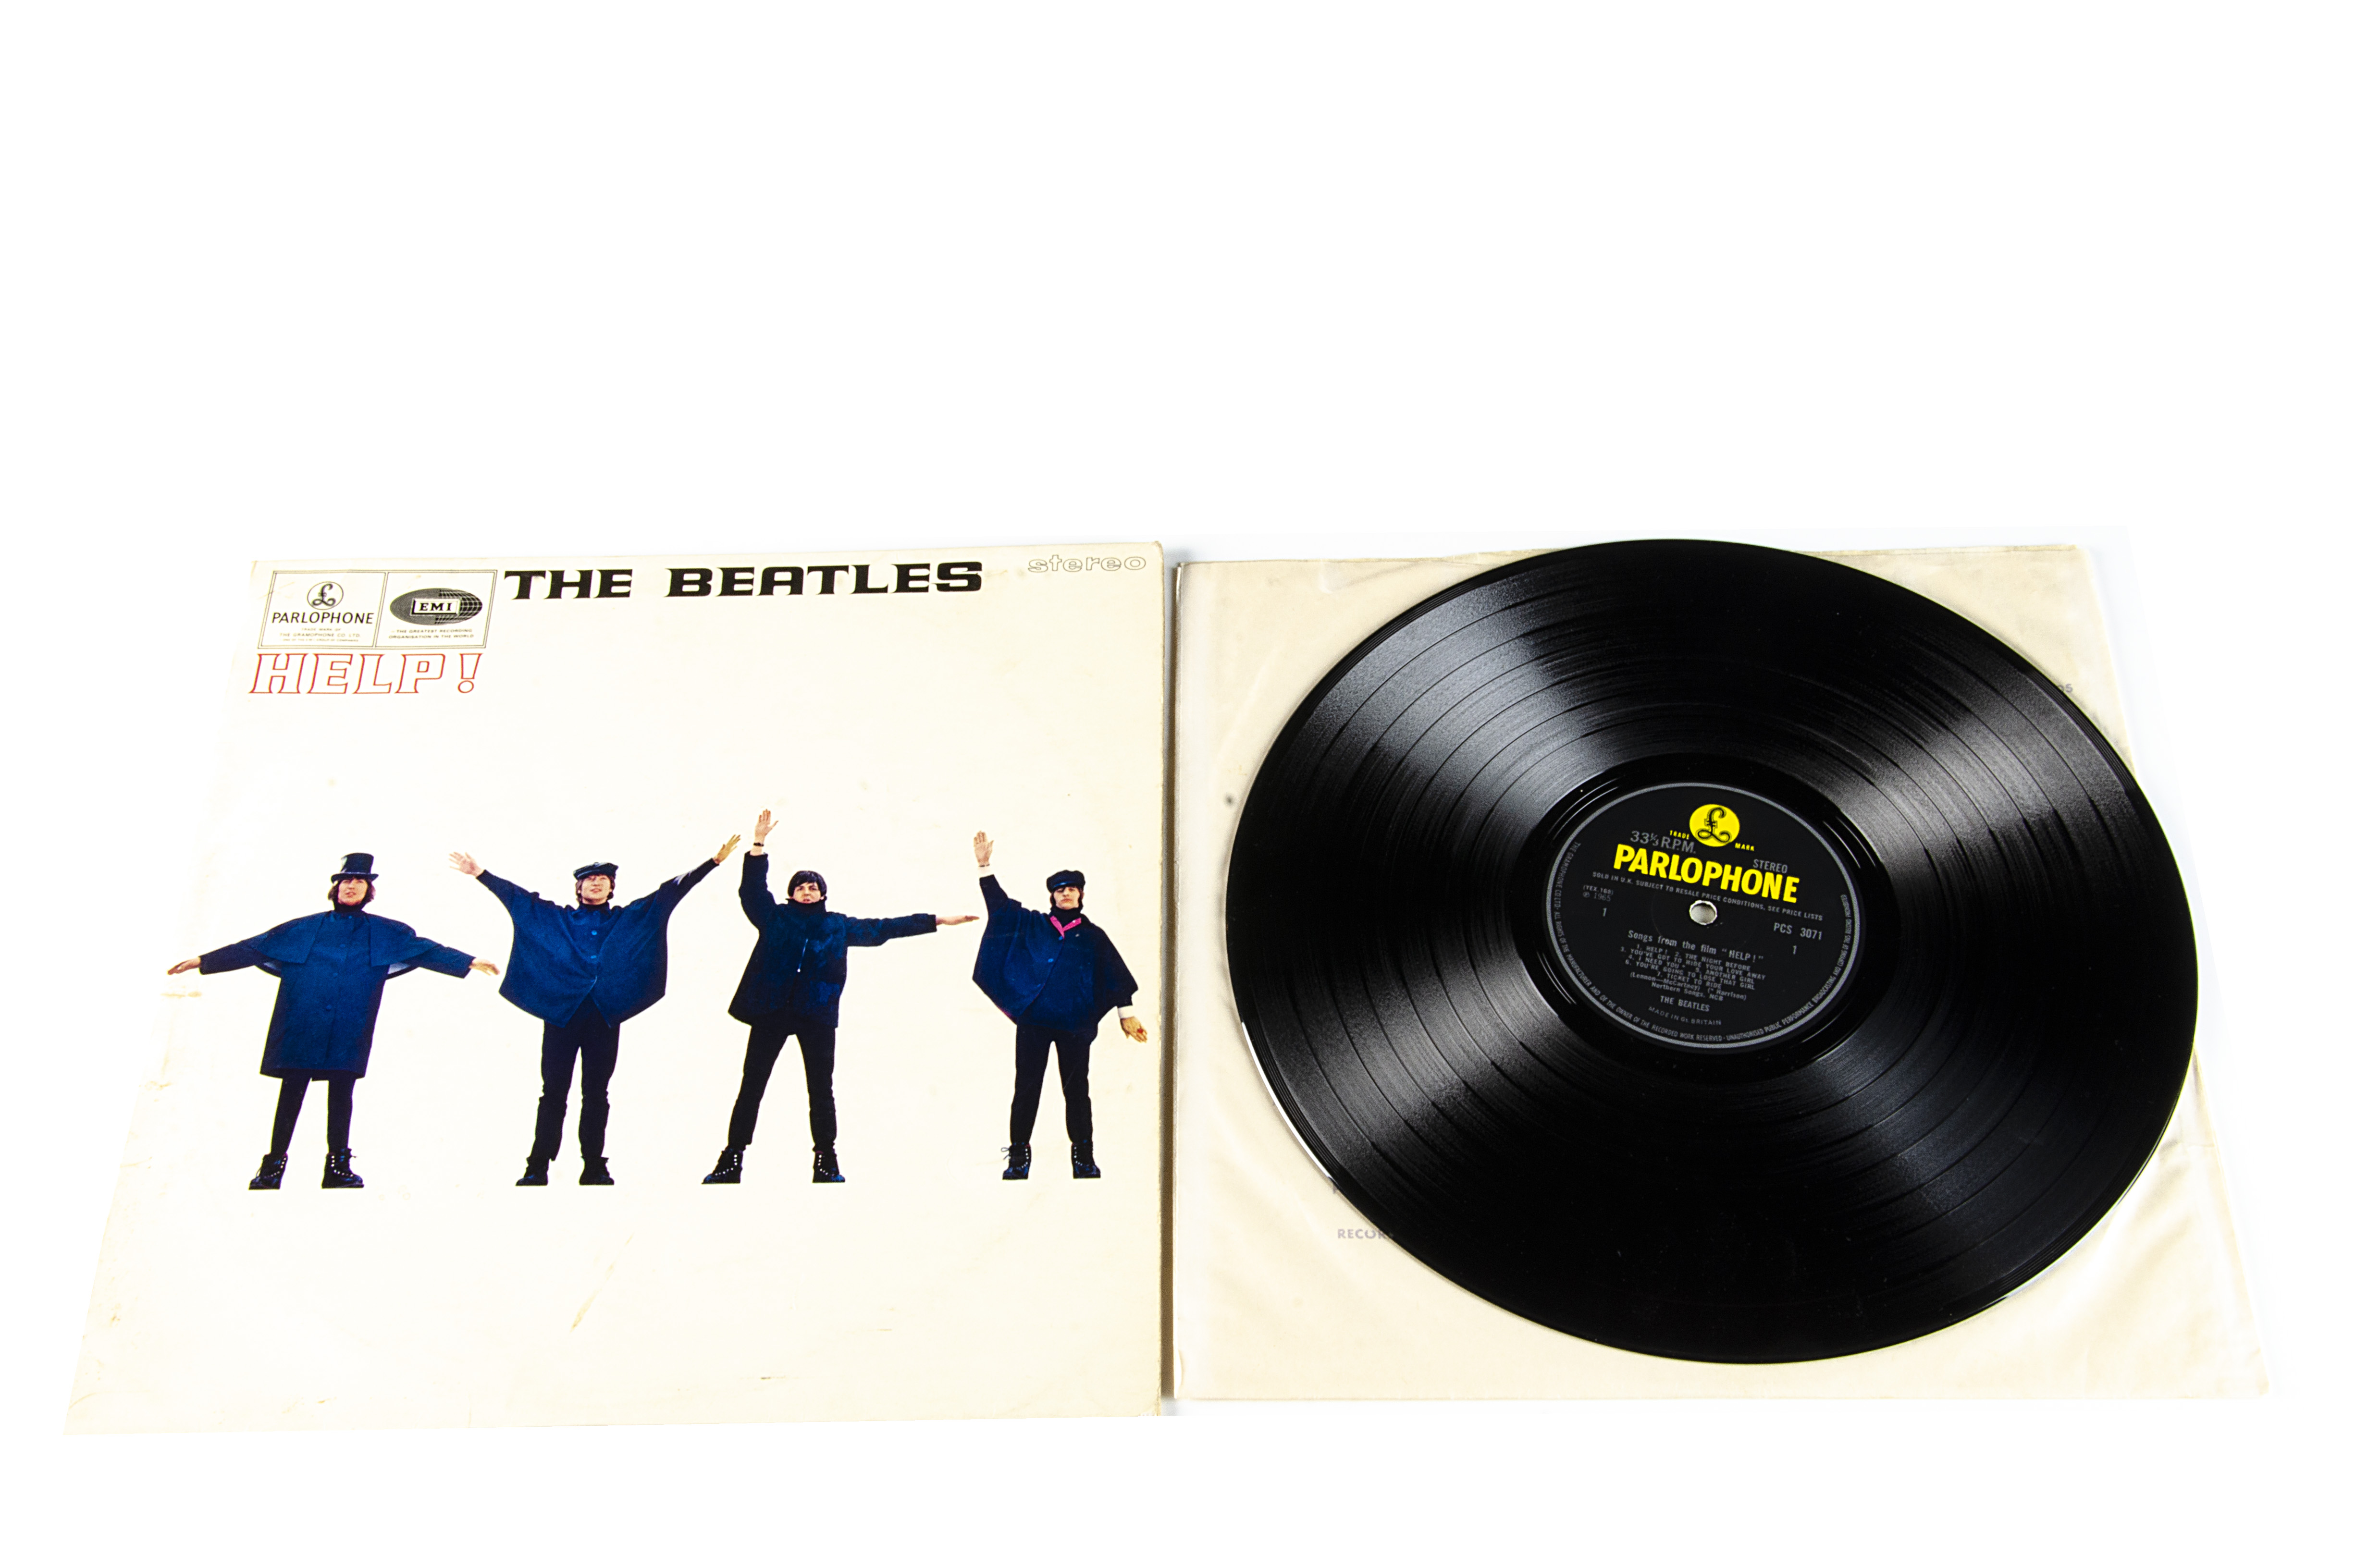 The Beatles LP, Help LP - UK First Press Stereo Release 1965 on Parlophone - PCS 3071. Laminated